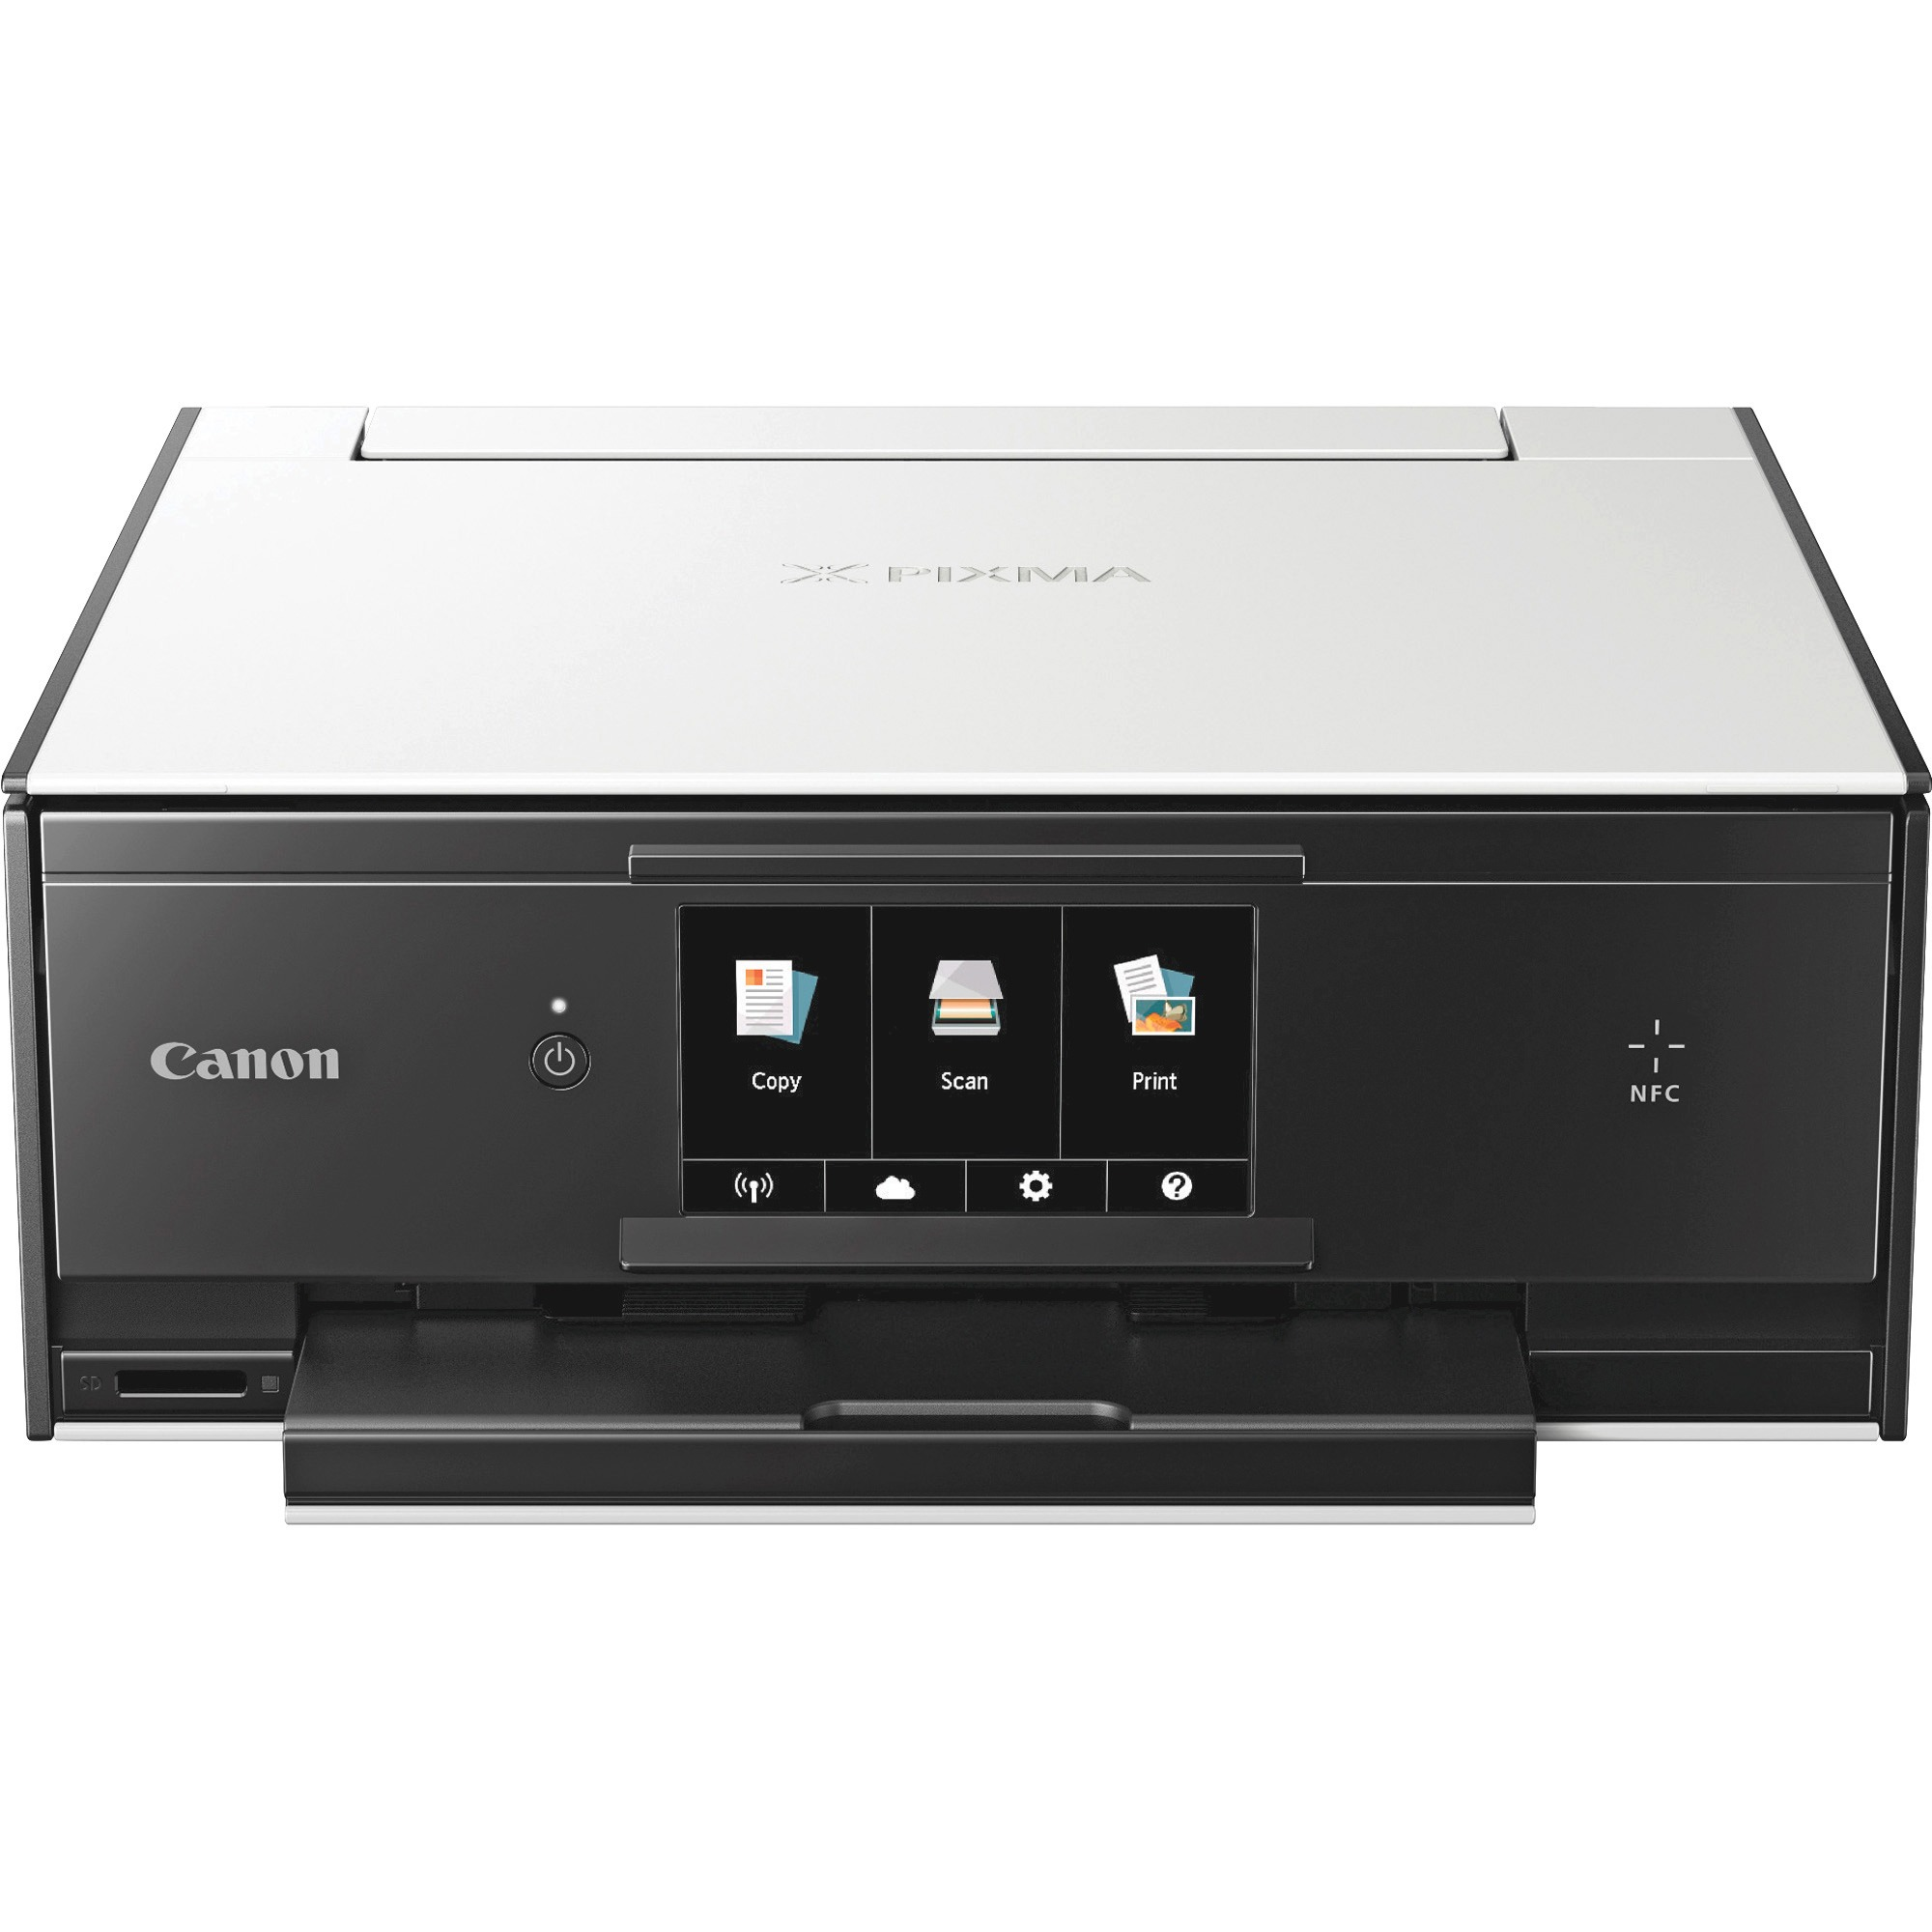 Canon PIXMA TS9020 Inkjet Multifunction Printer - Color - Photo Print - Desktop